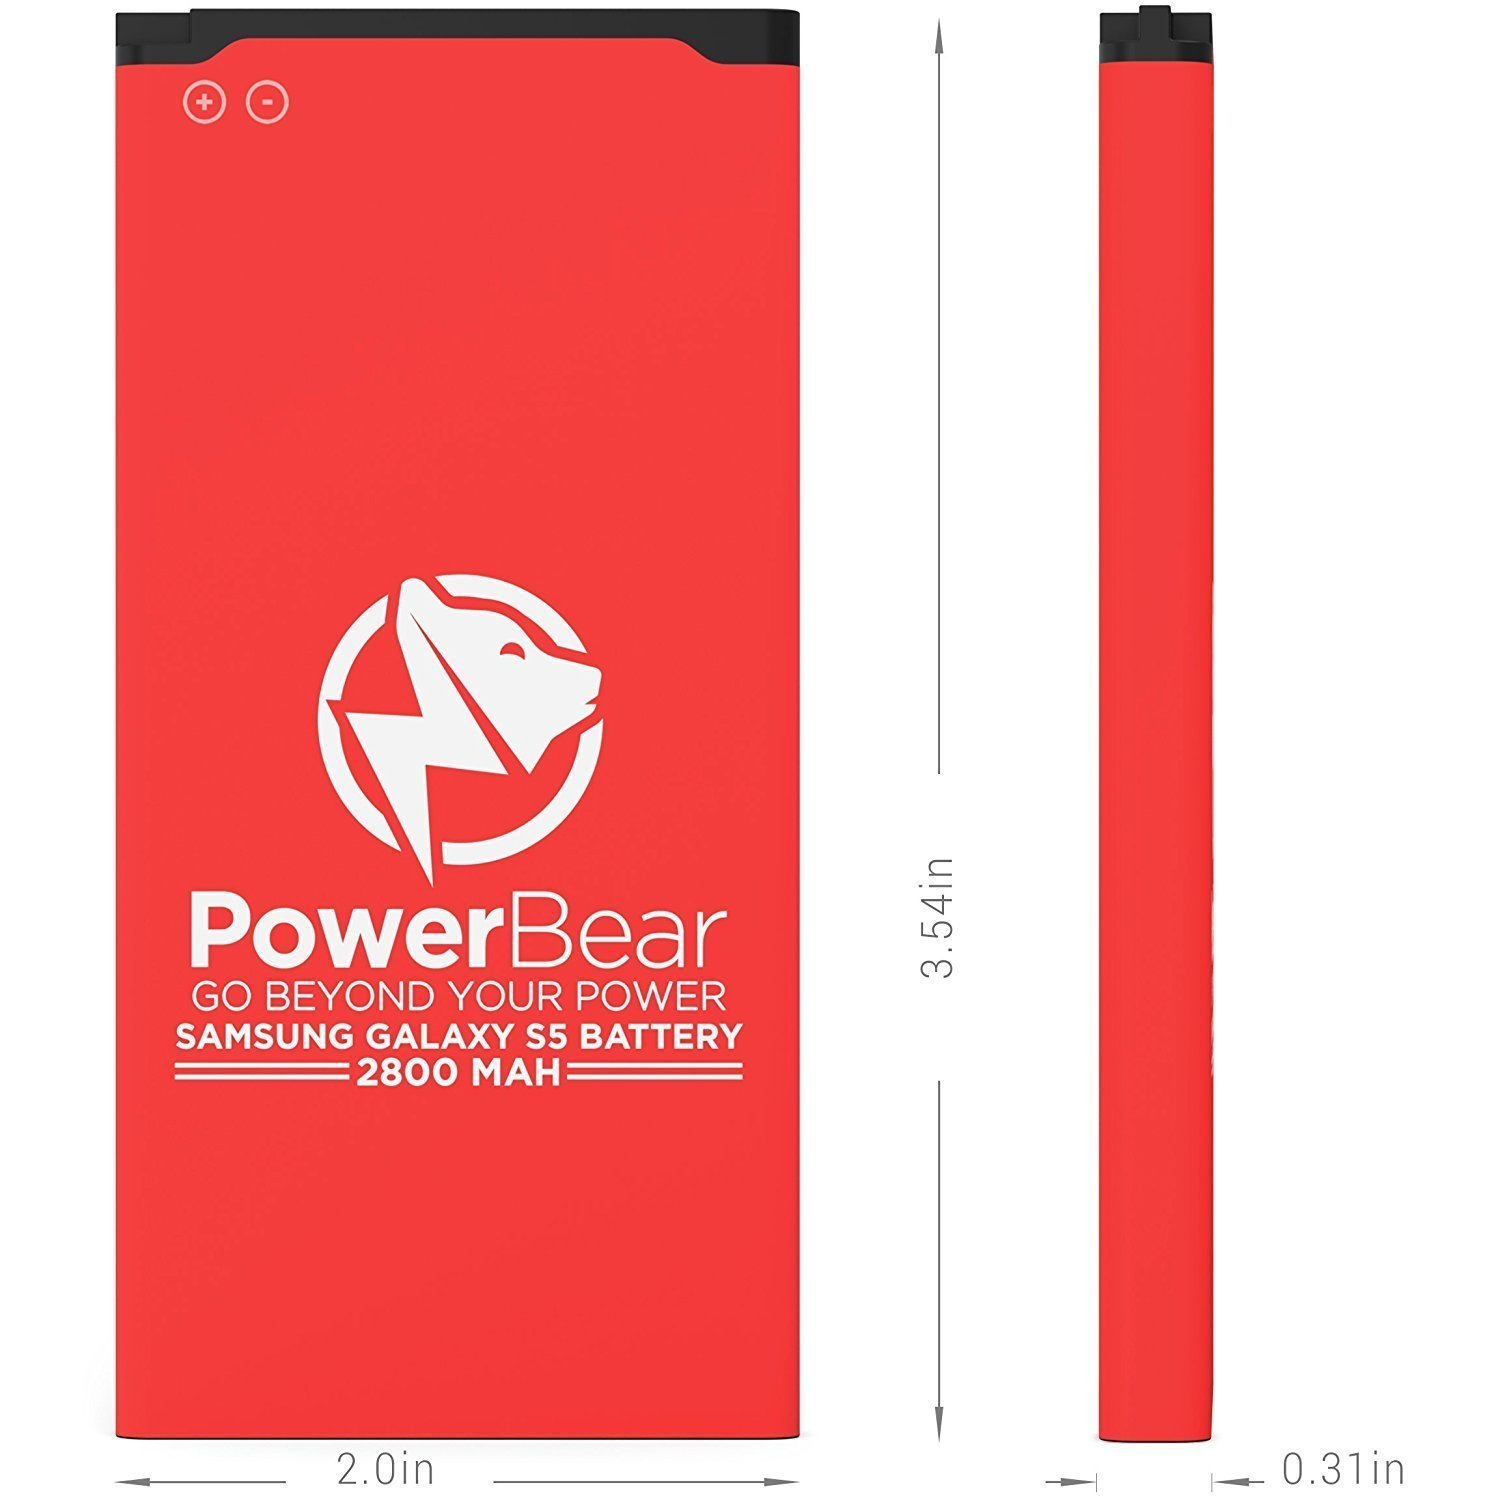 PowerBear Samsung Galaxy S5 Battery (2,800 mAh) UPGRADED Spare Battery for the Galaxy S5 [I9600, G900F, G900V (Verizon), G900T (T-Mobile), G900A (AT&T)] Replacement Battery [24 Month Warranty] by PowerBear (Image #5)